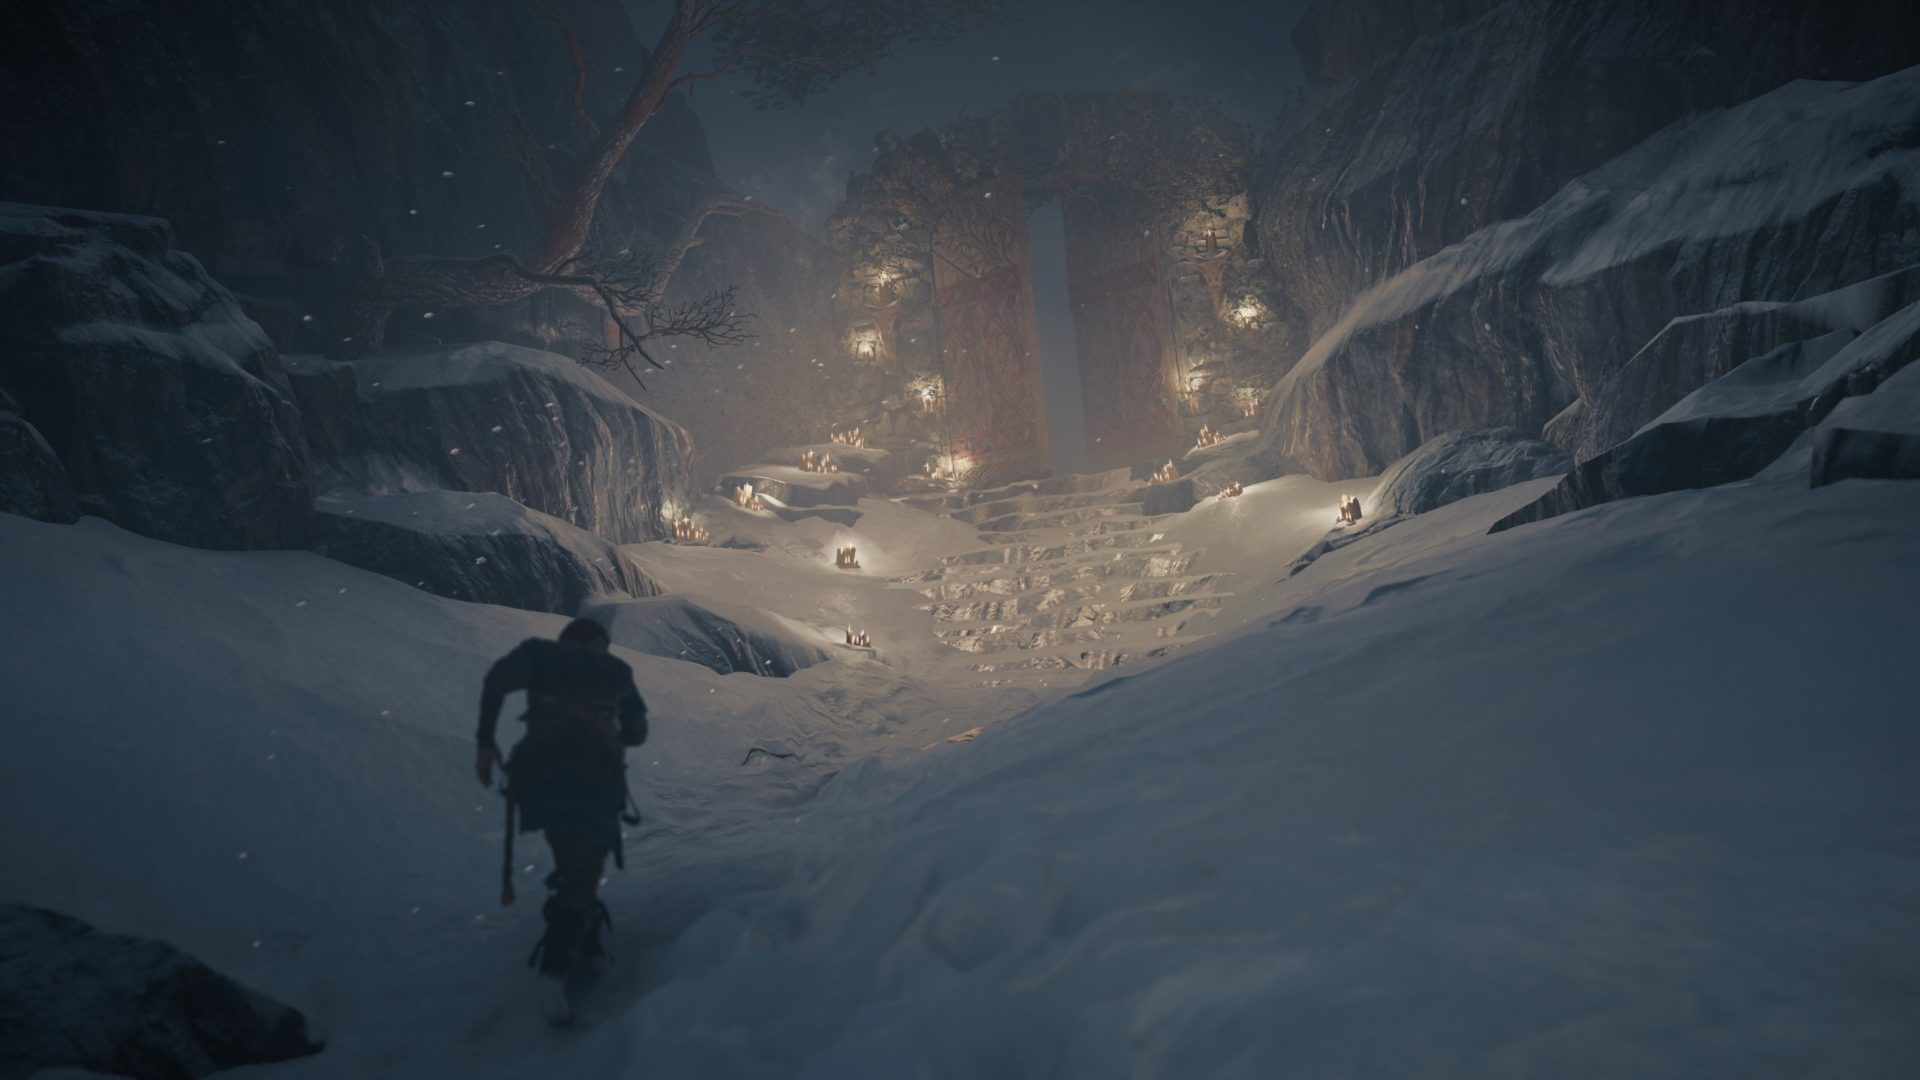 Assassin's Creed Valhalla review image of night